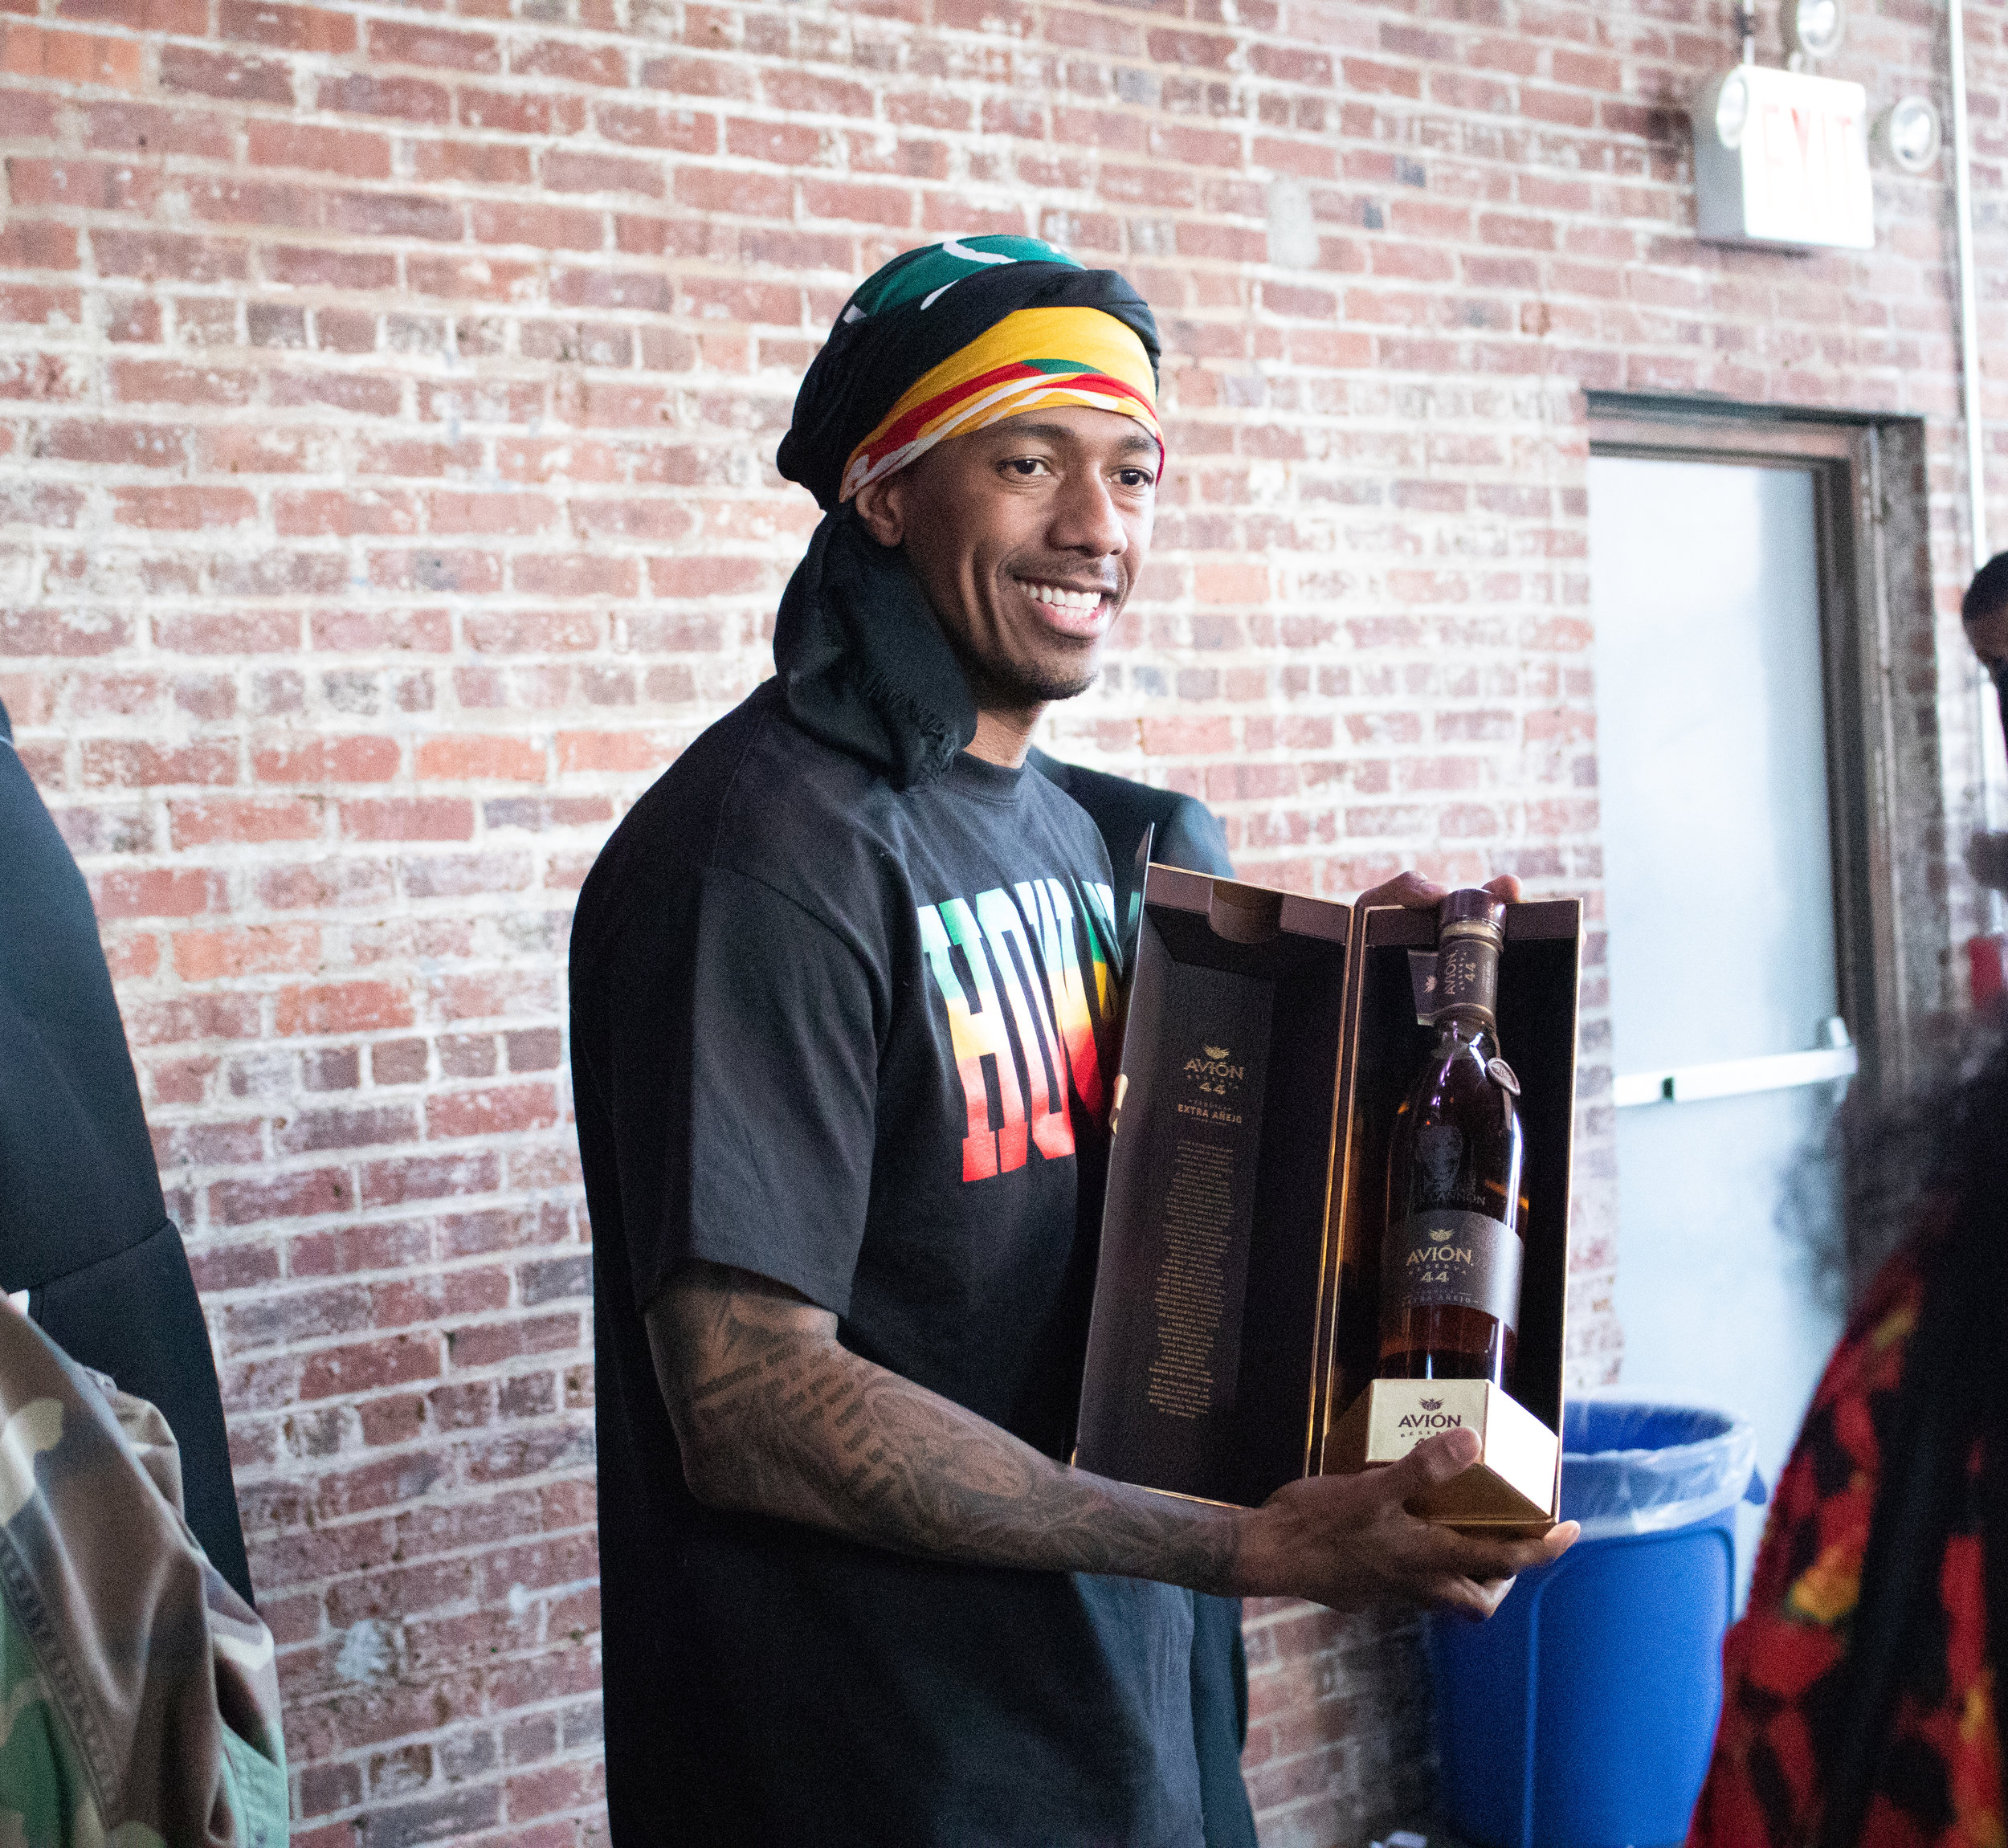 Nick Cannon receives a gift from 2018 Culture Con sponsor, Avion Tequila, before stepping on the CC stage.